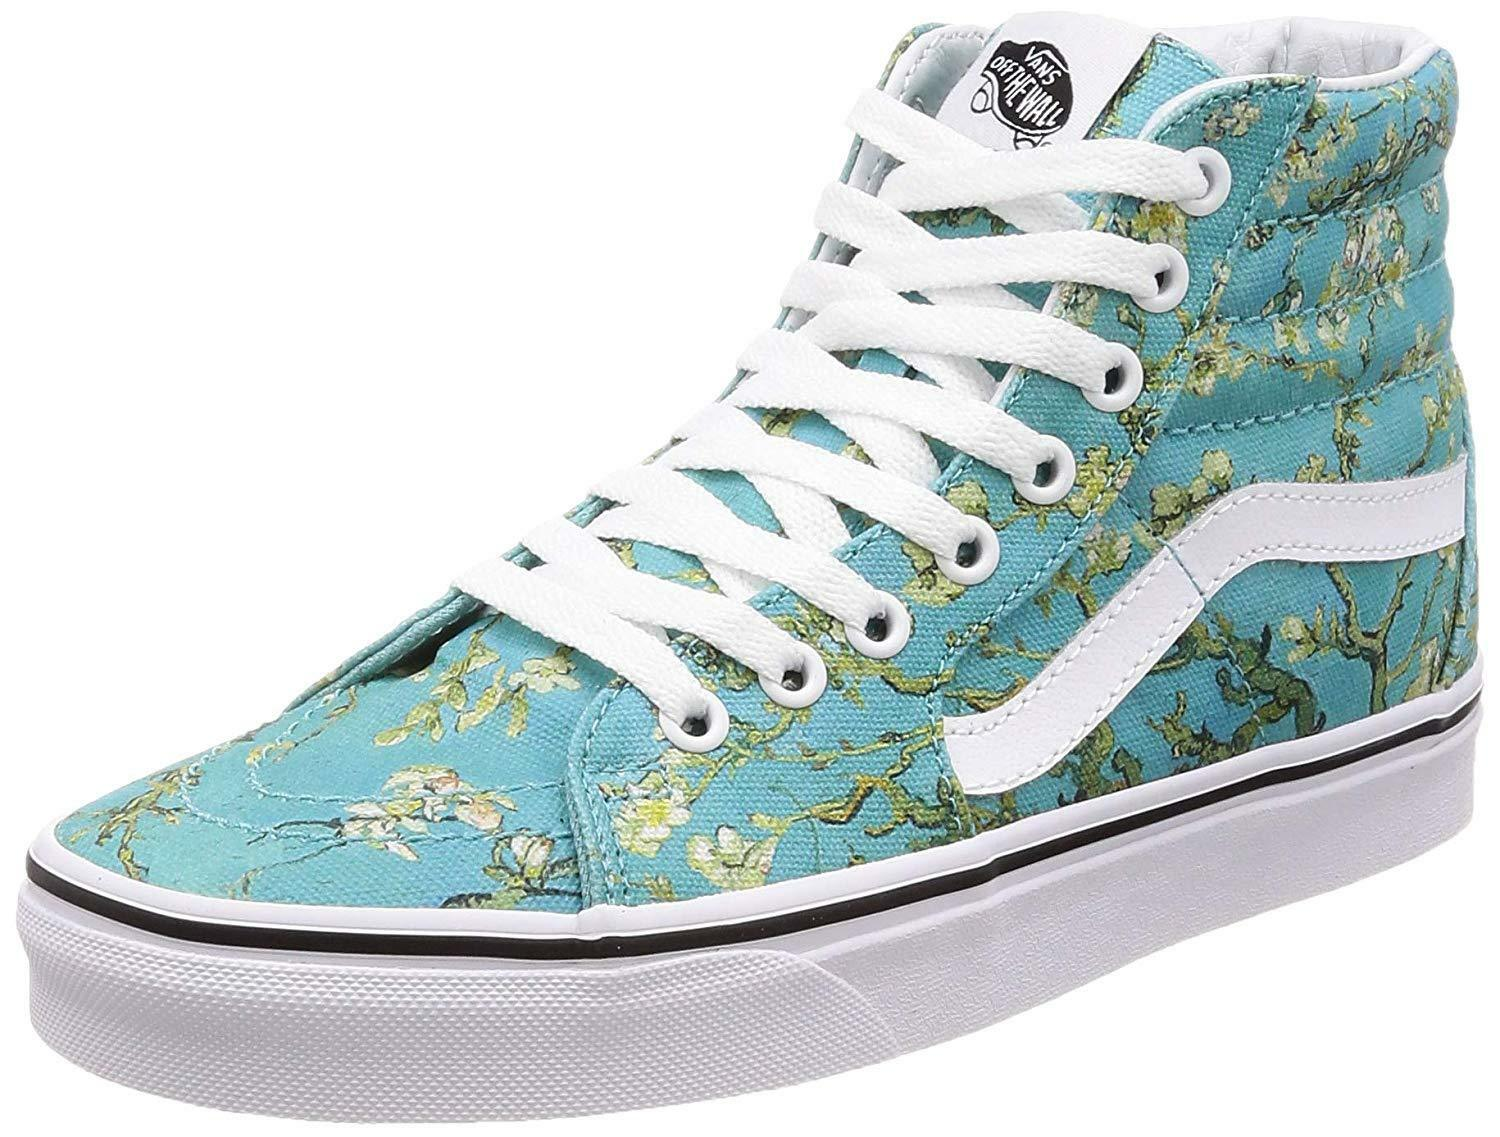 NEW Vans Sk8 Hi VINCENT VAN GOGH Almond Canvas shoes 3.5 MENS